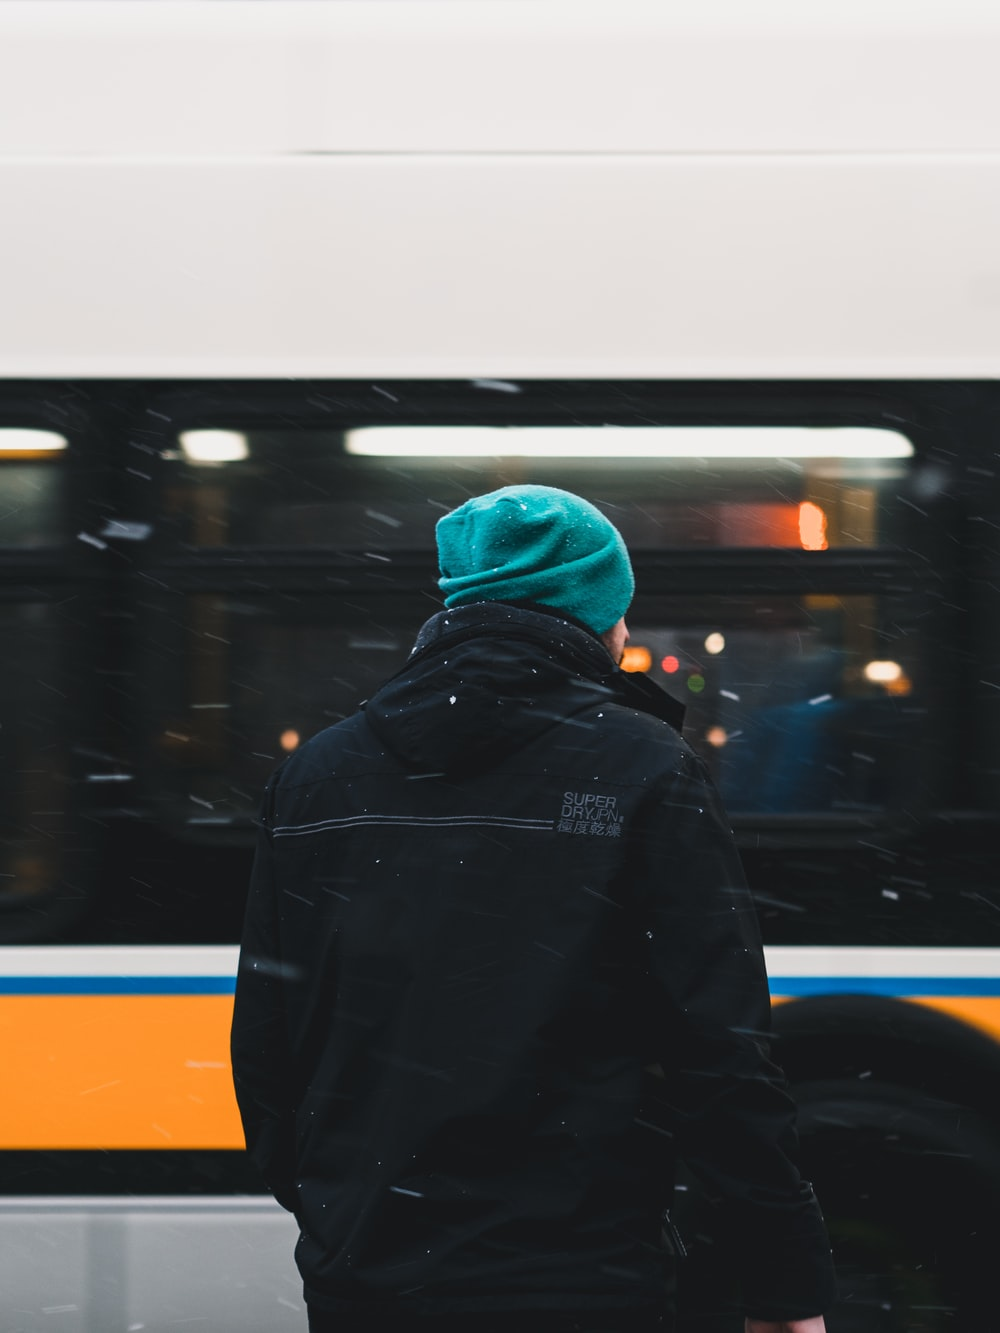 unknown person in black hoodie and teal knit cap